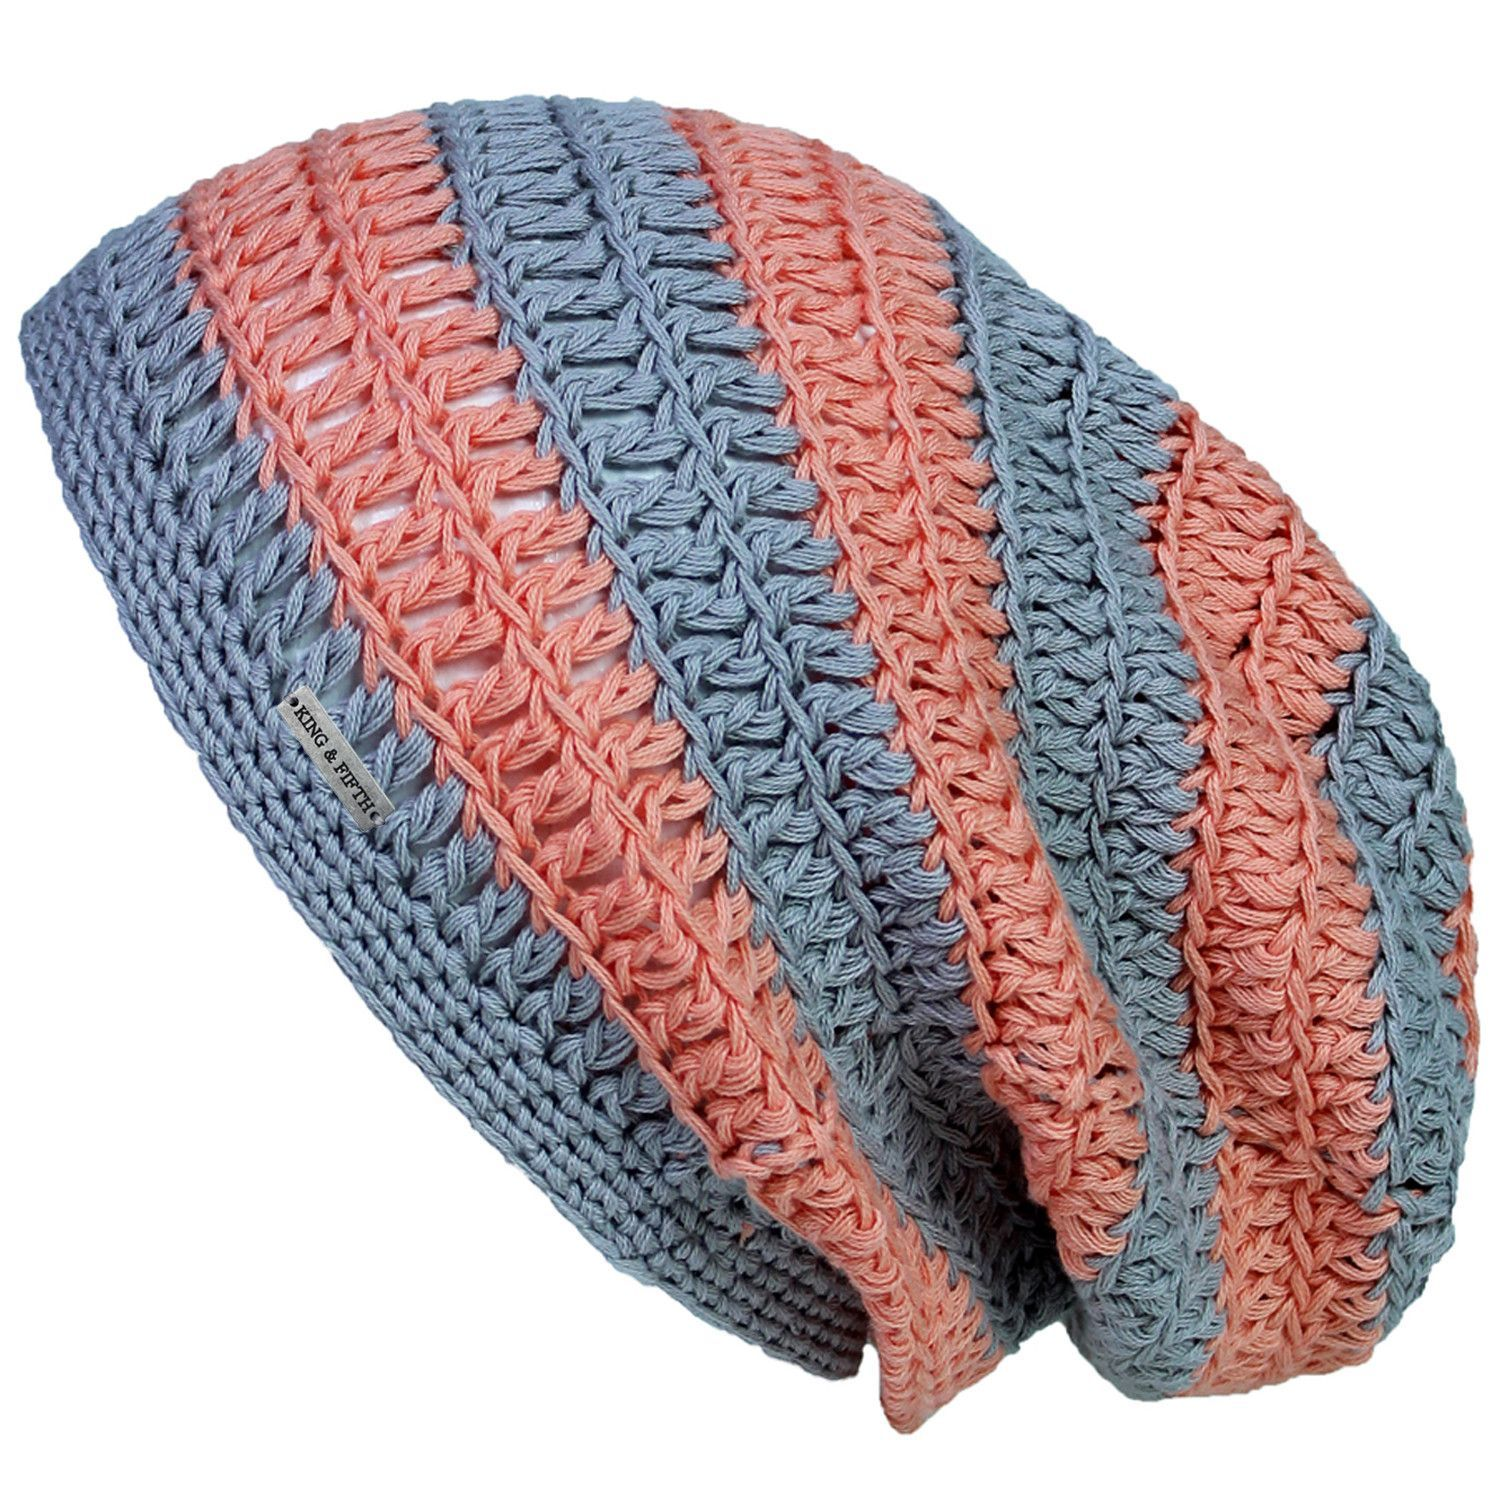 Womens Summer Beanie - The Beeskie SU